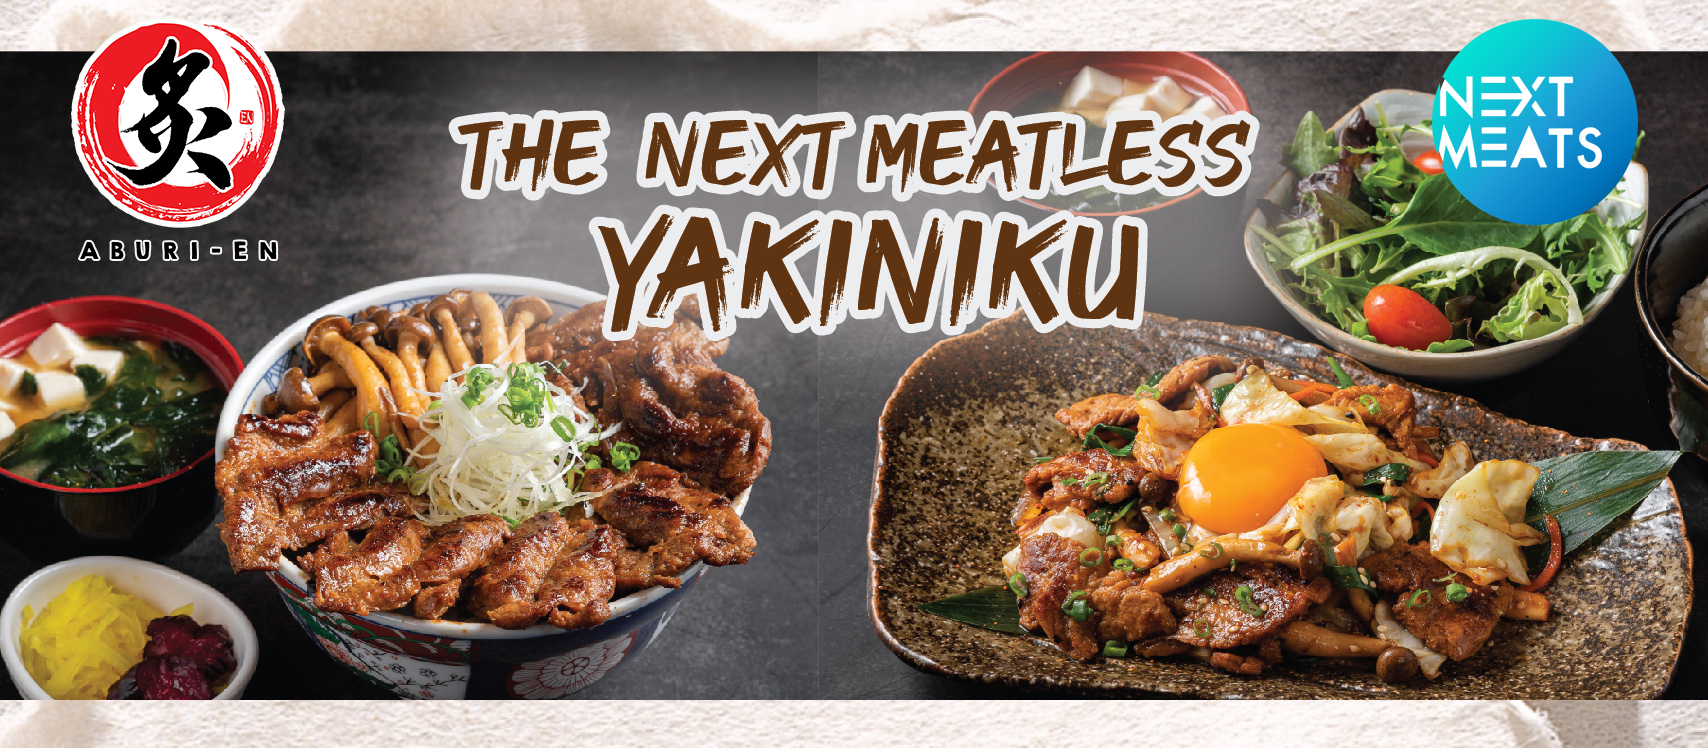 Next Meats Purveyor of the Worlds First Plant-based Yakiniku Meats Is Now in Singapore